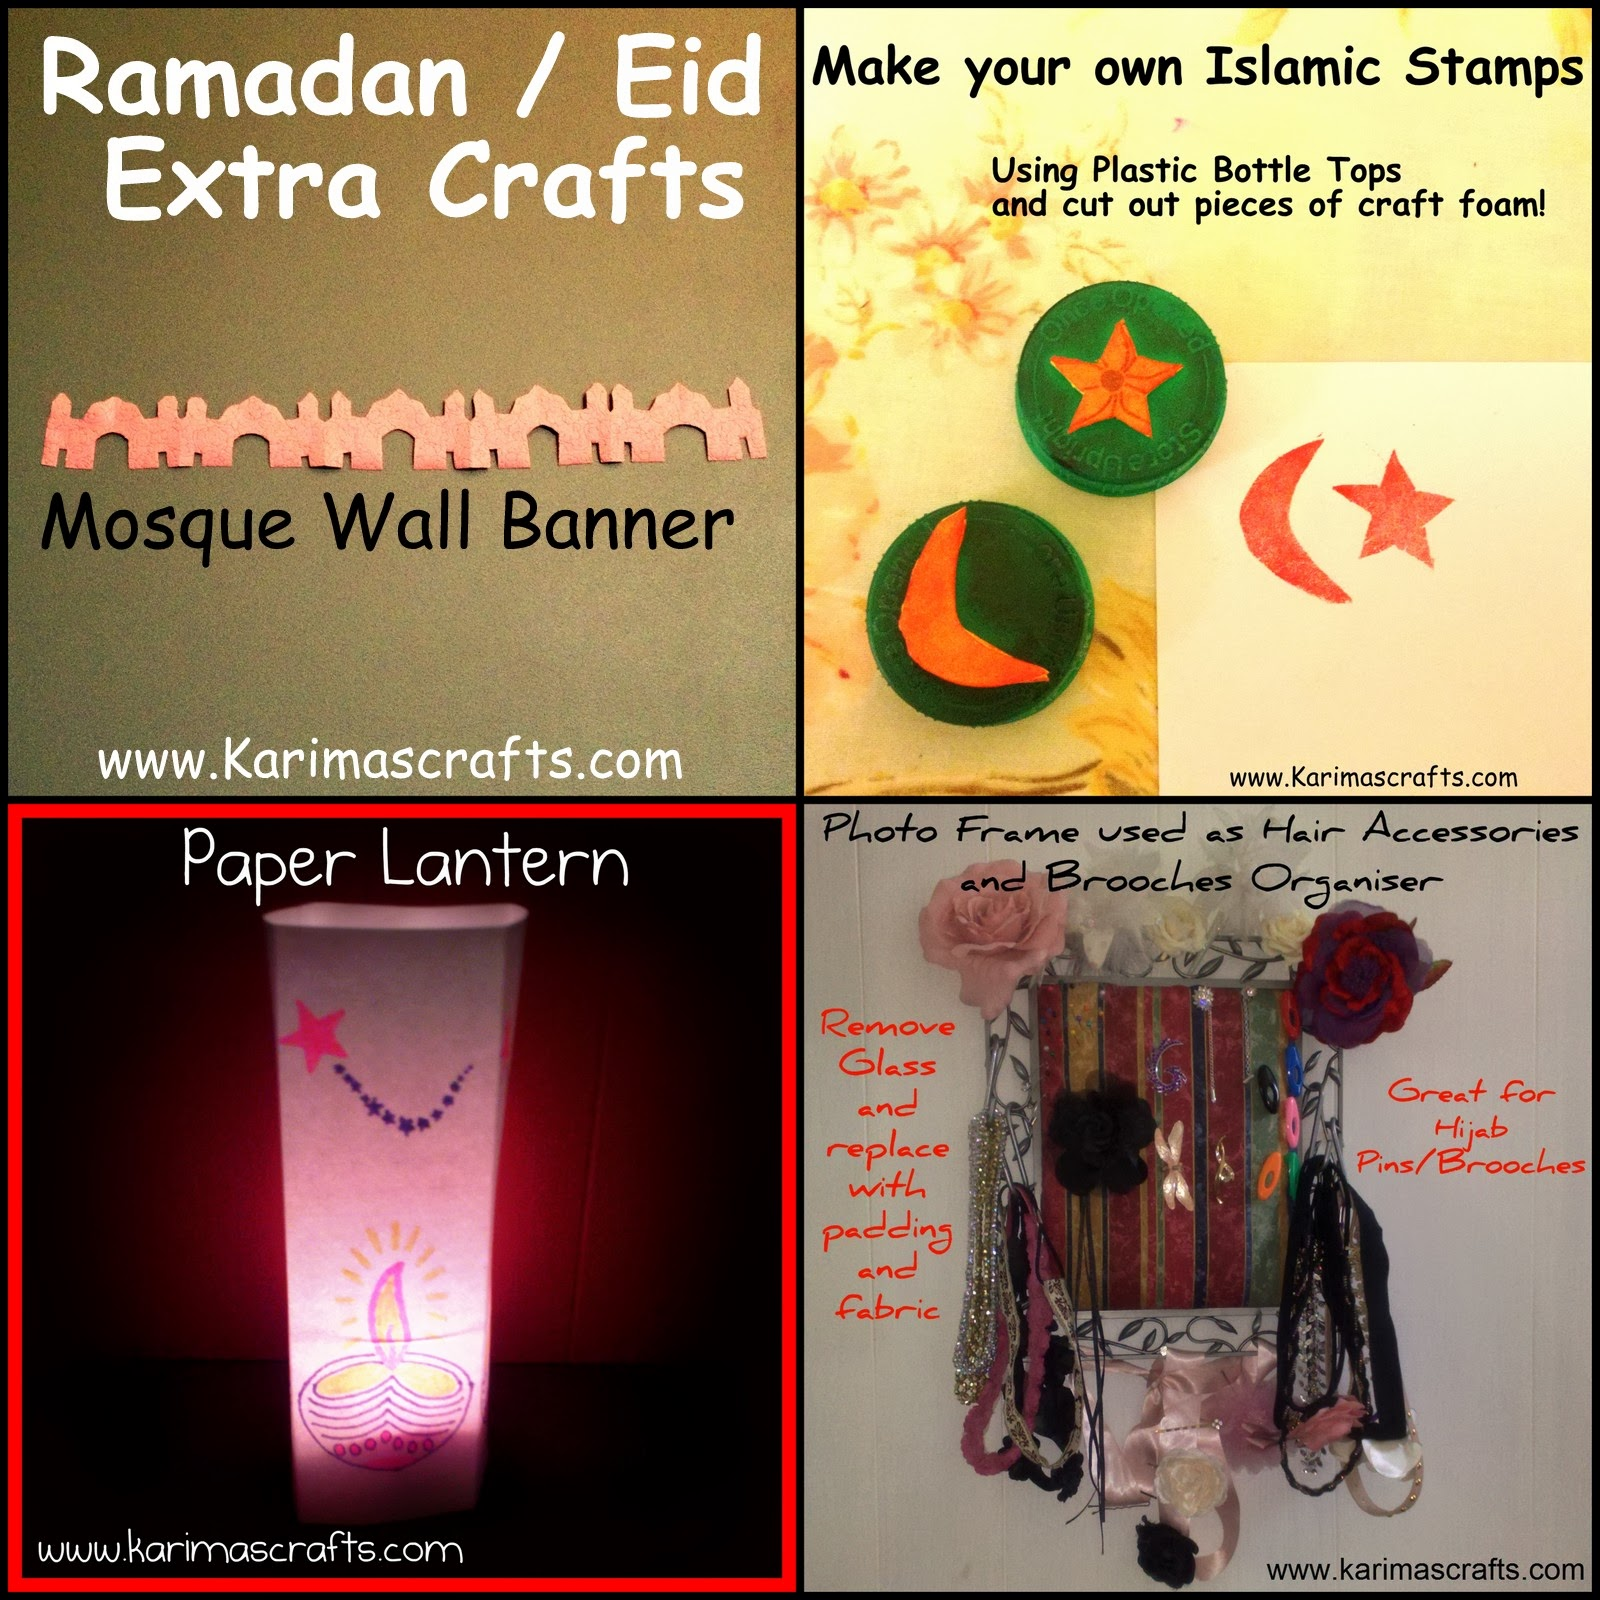 ramadan crafts extra Muslim Islamic